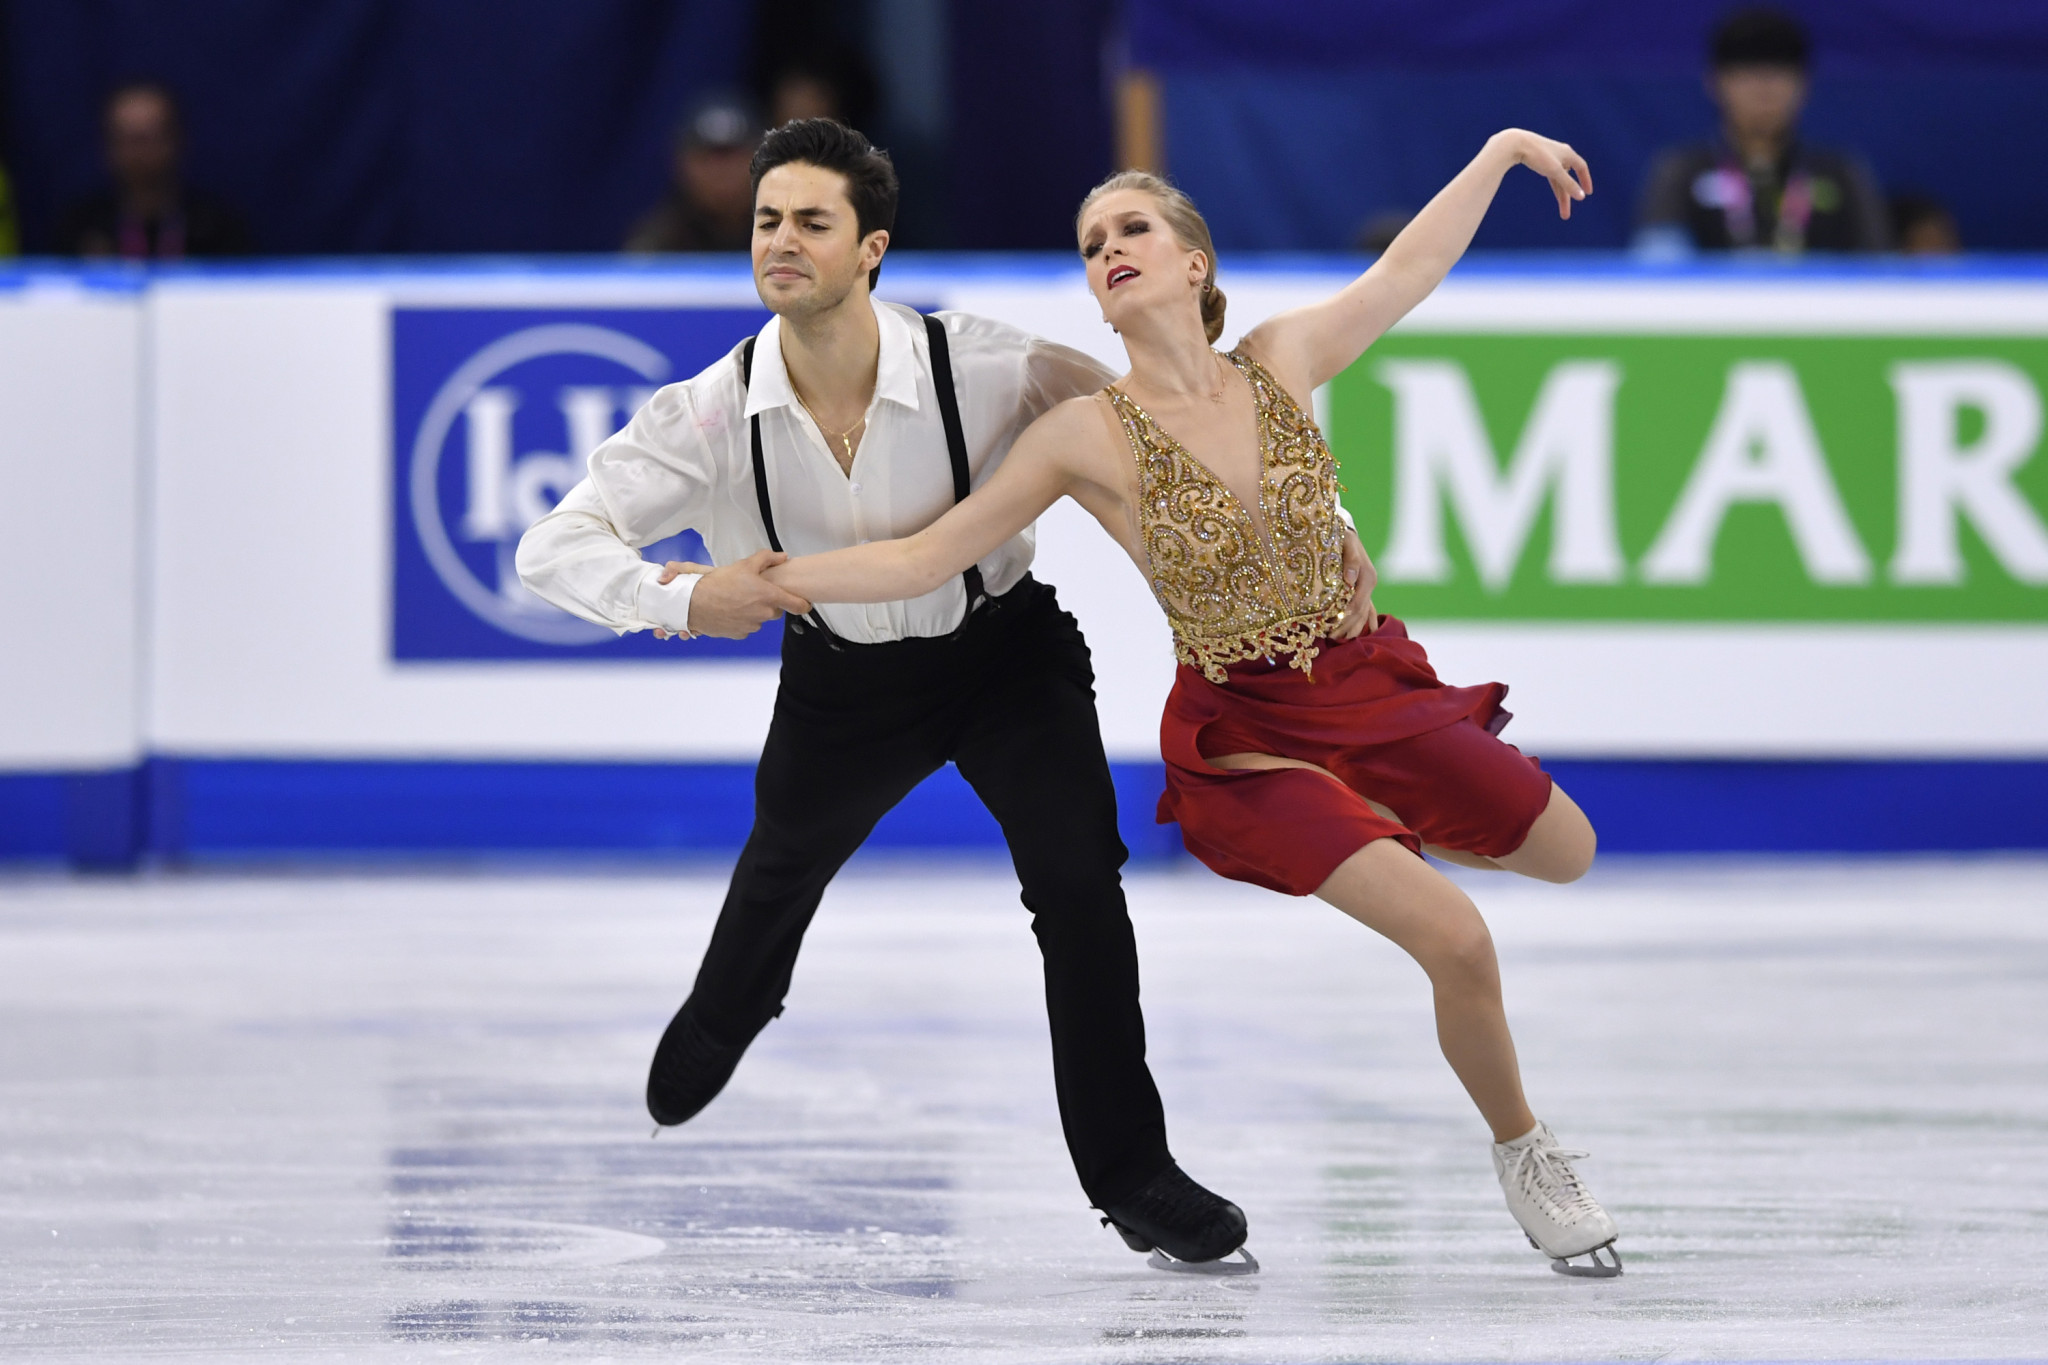 Kaitlyn Weaver won three World Championship medals in ice dance alongside Andrew Poje ©Getty Images